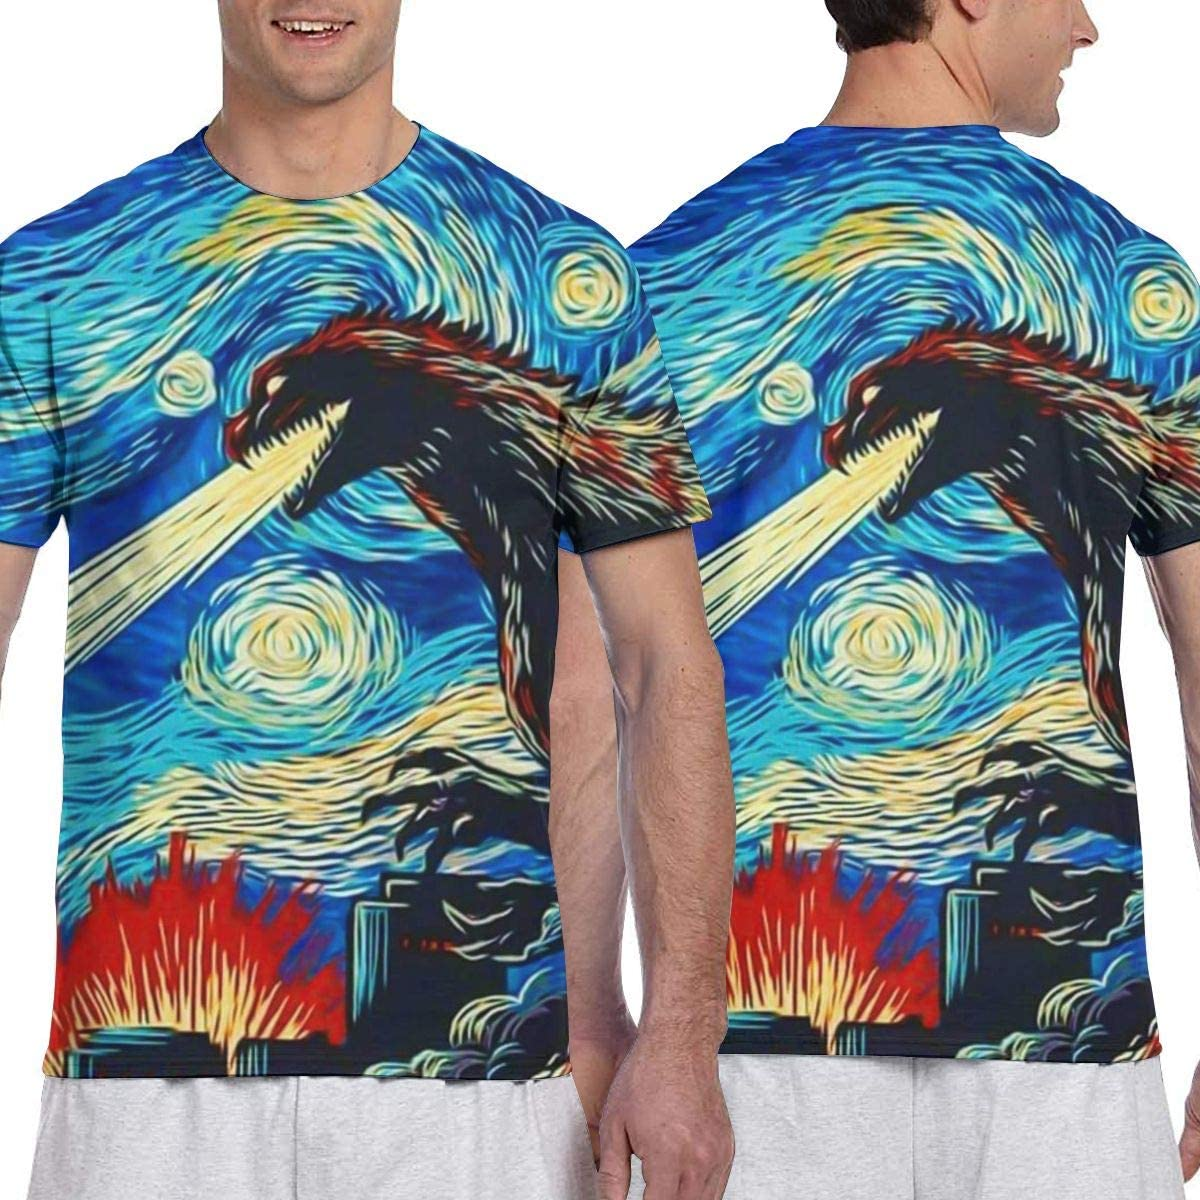 Mens 3D Full Printing Athletic Hawaiian Short Sleeve T-Shirts Shirts